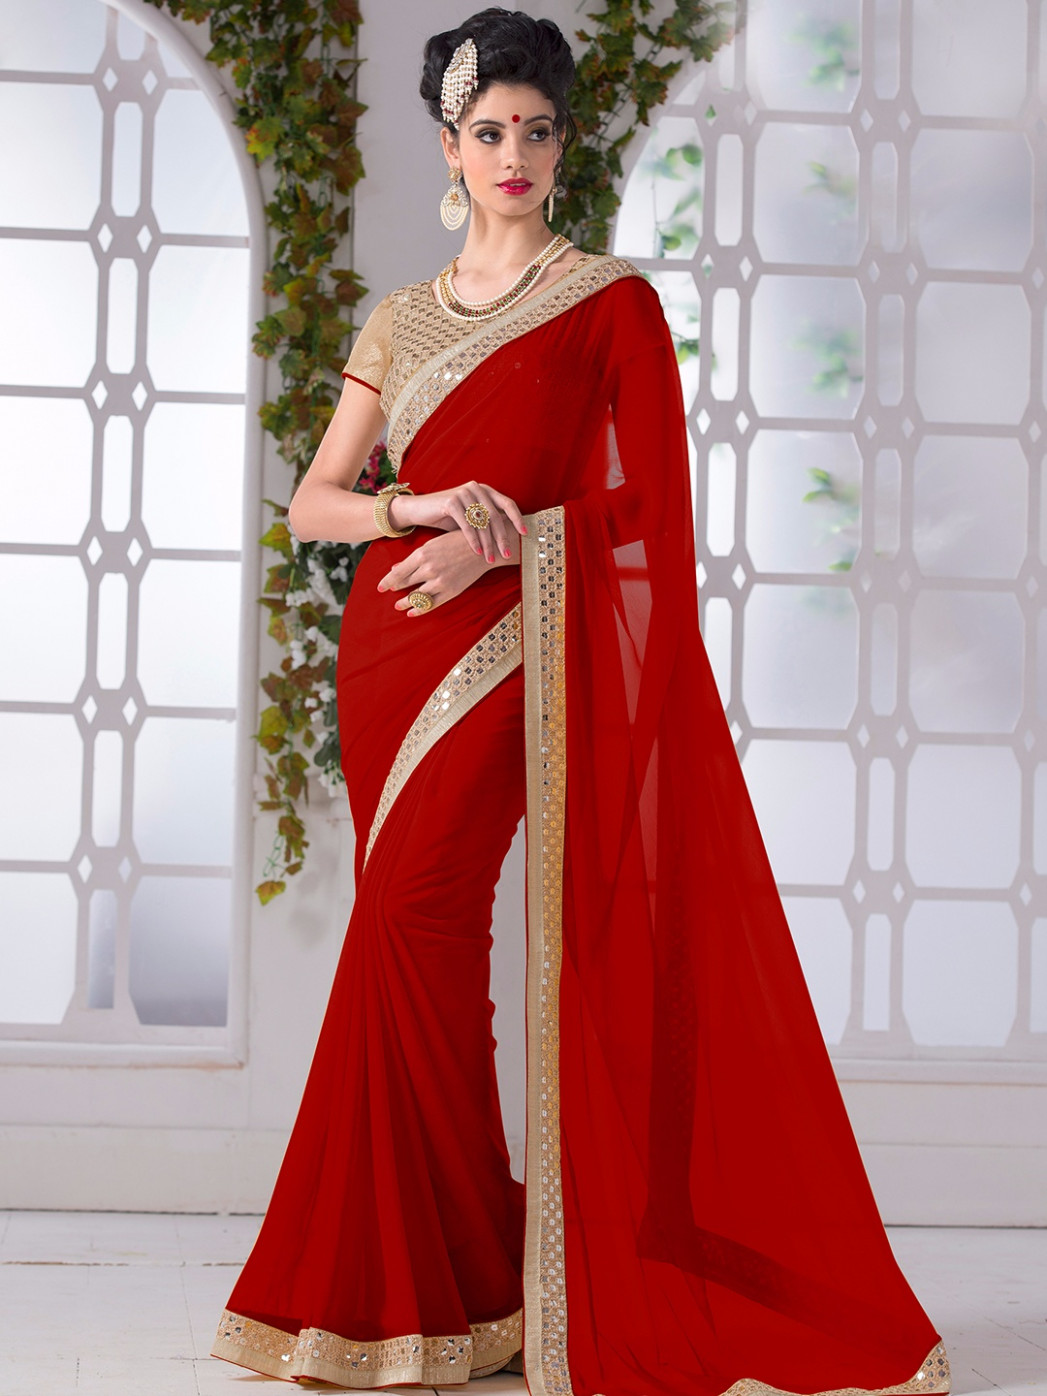 15 Red Color Beautiful Sarees for Wedding & Parties